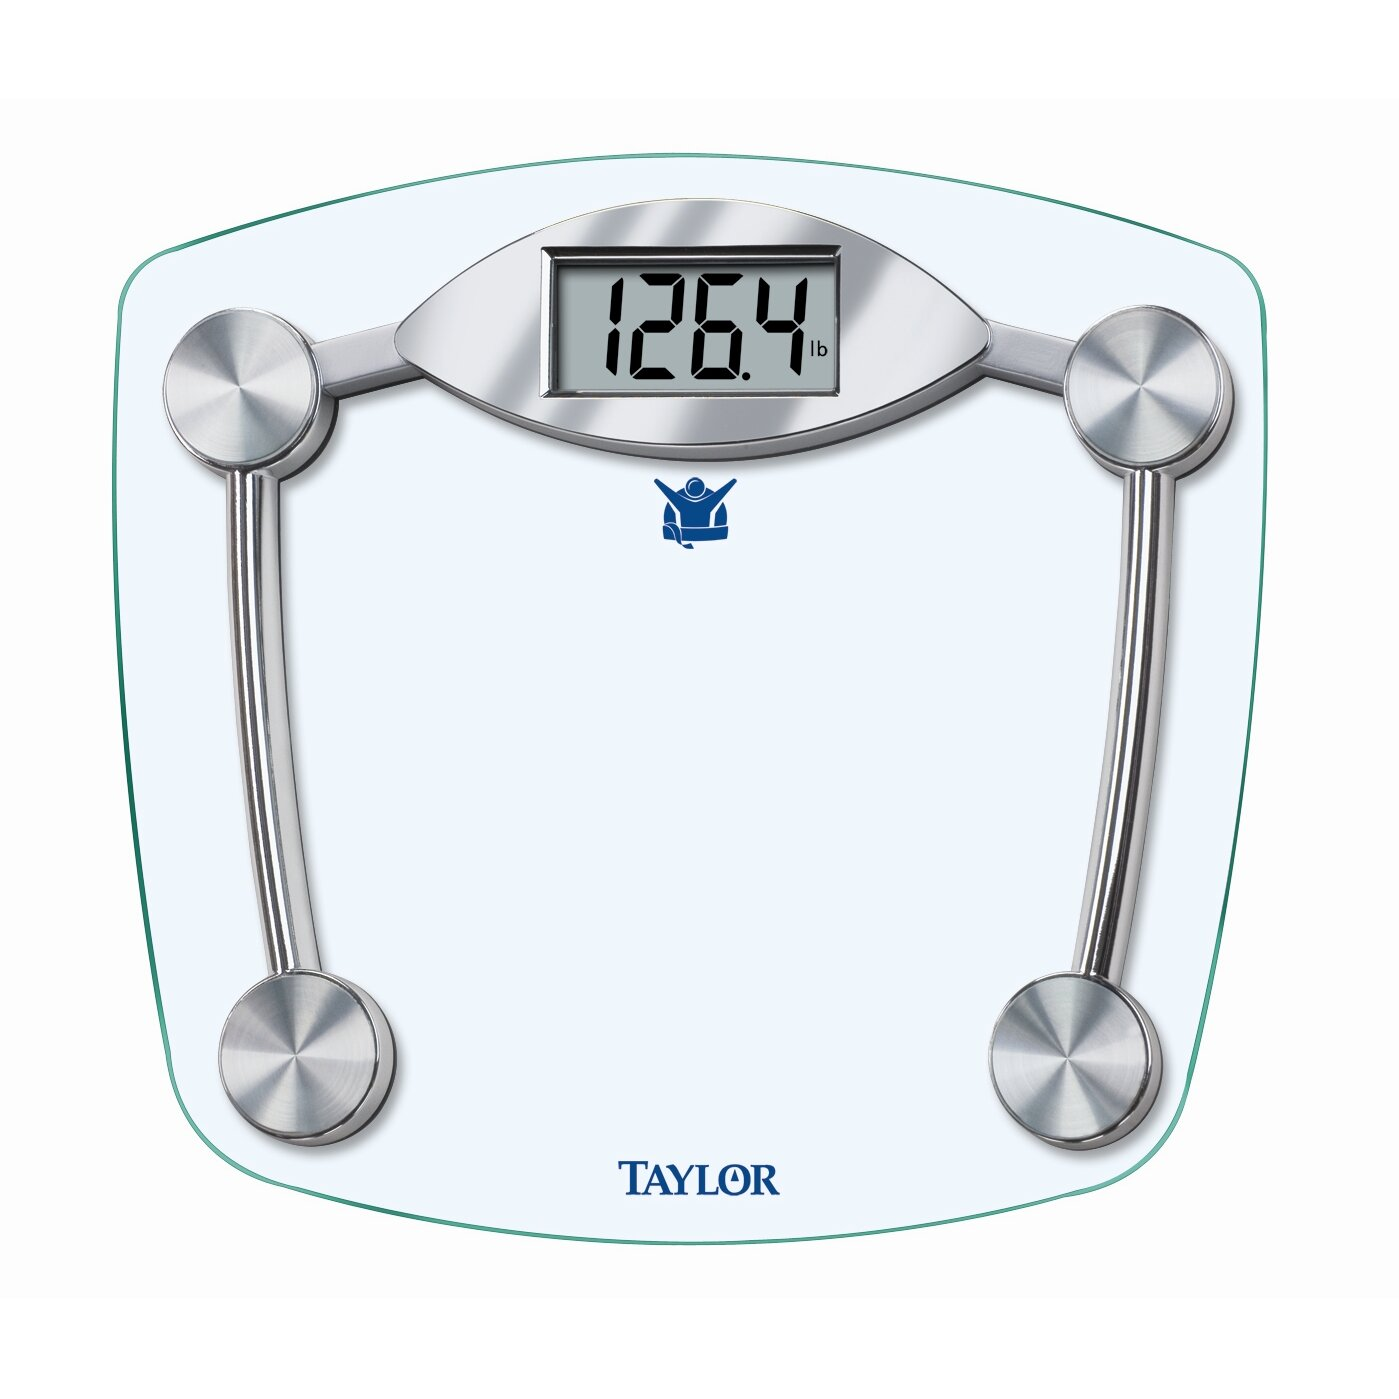 Bathroom Scale Ratings: Taylor Digital Bath Scale & Reviews